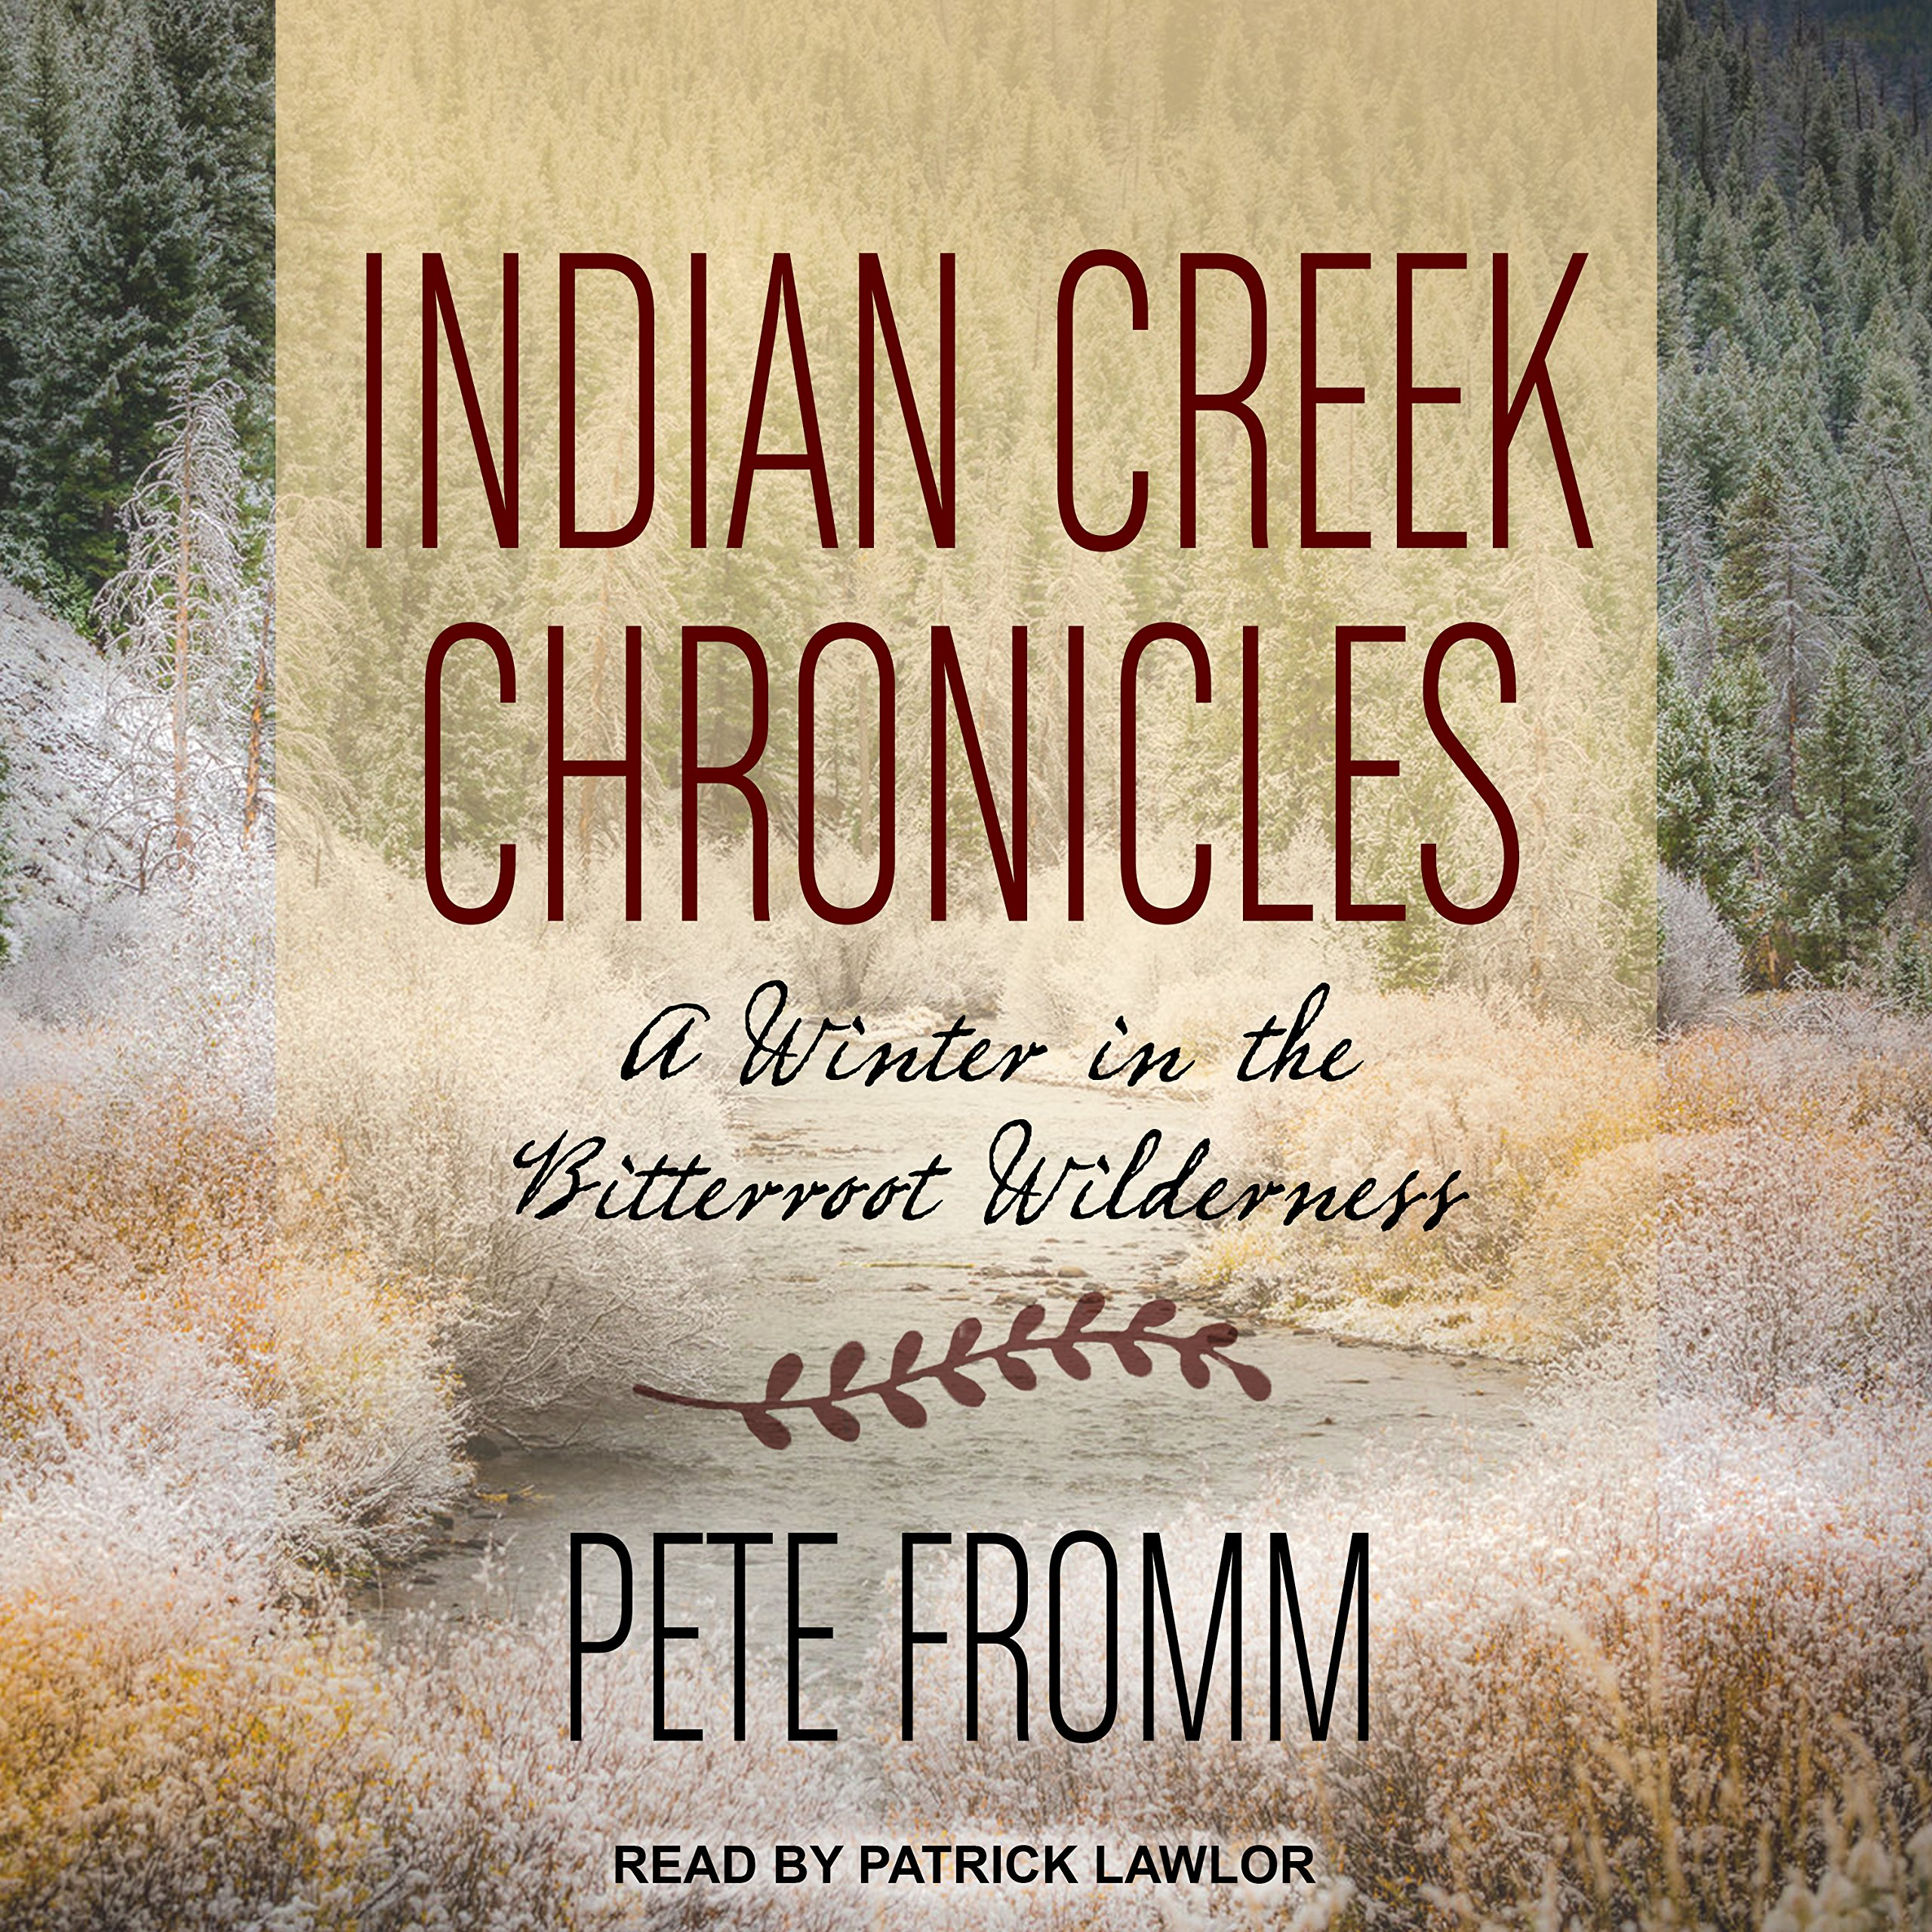 Indian Creek Chronicles: A Winter in the Bitterroot Wilderness by Tantor Audio (Image #1)